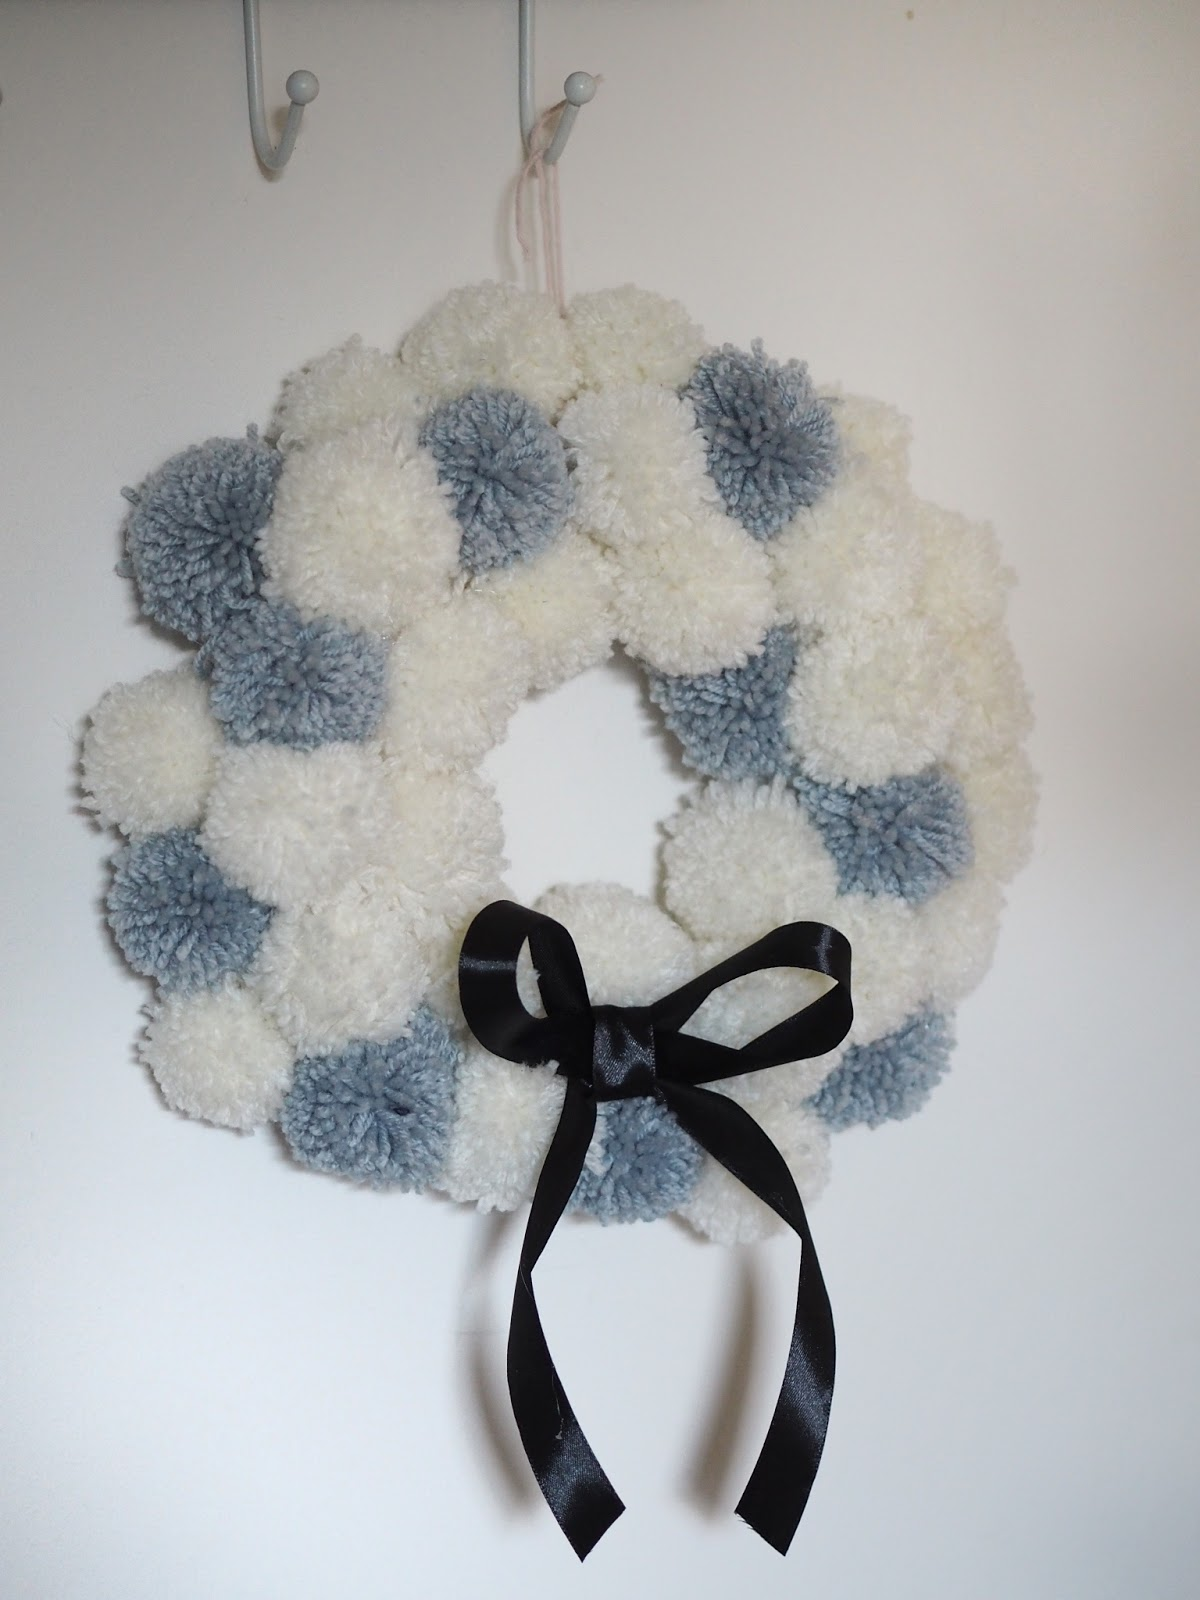 DIY Christmas wreath decor made from wool yarn pom pots and ribbon. Make your own snowball style wreath from woollen pom poms in this simple DIY tutorial budget Christmas decoration.